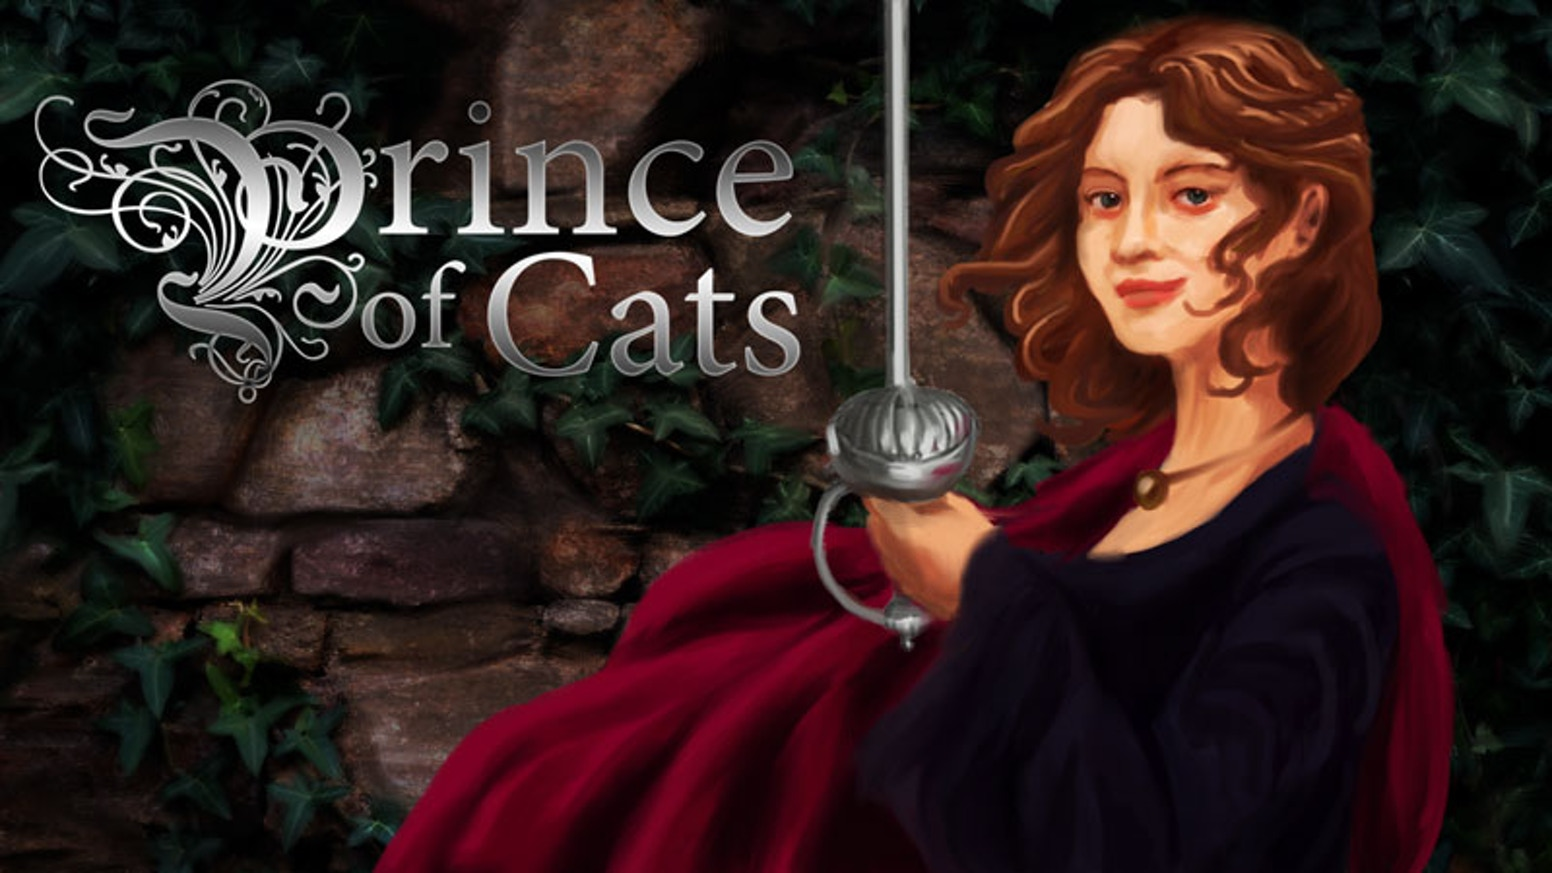 A visual novel/life sim with Shakespearean characters and Nim, a cat spirit who is searching for her master, the Prince of Cats.